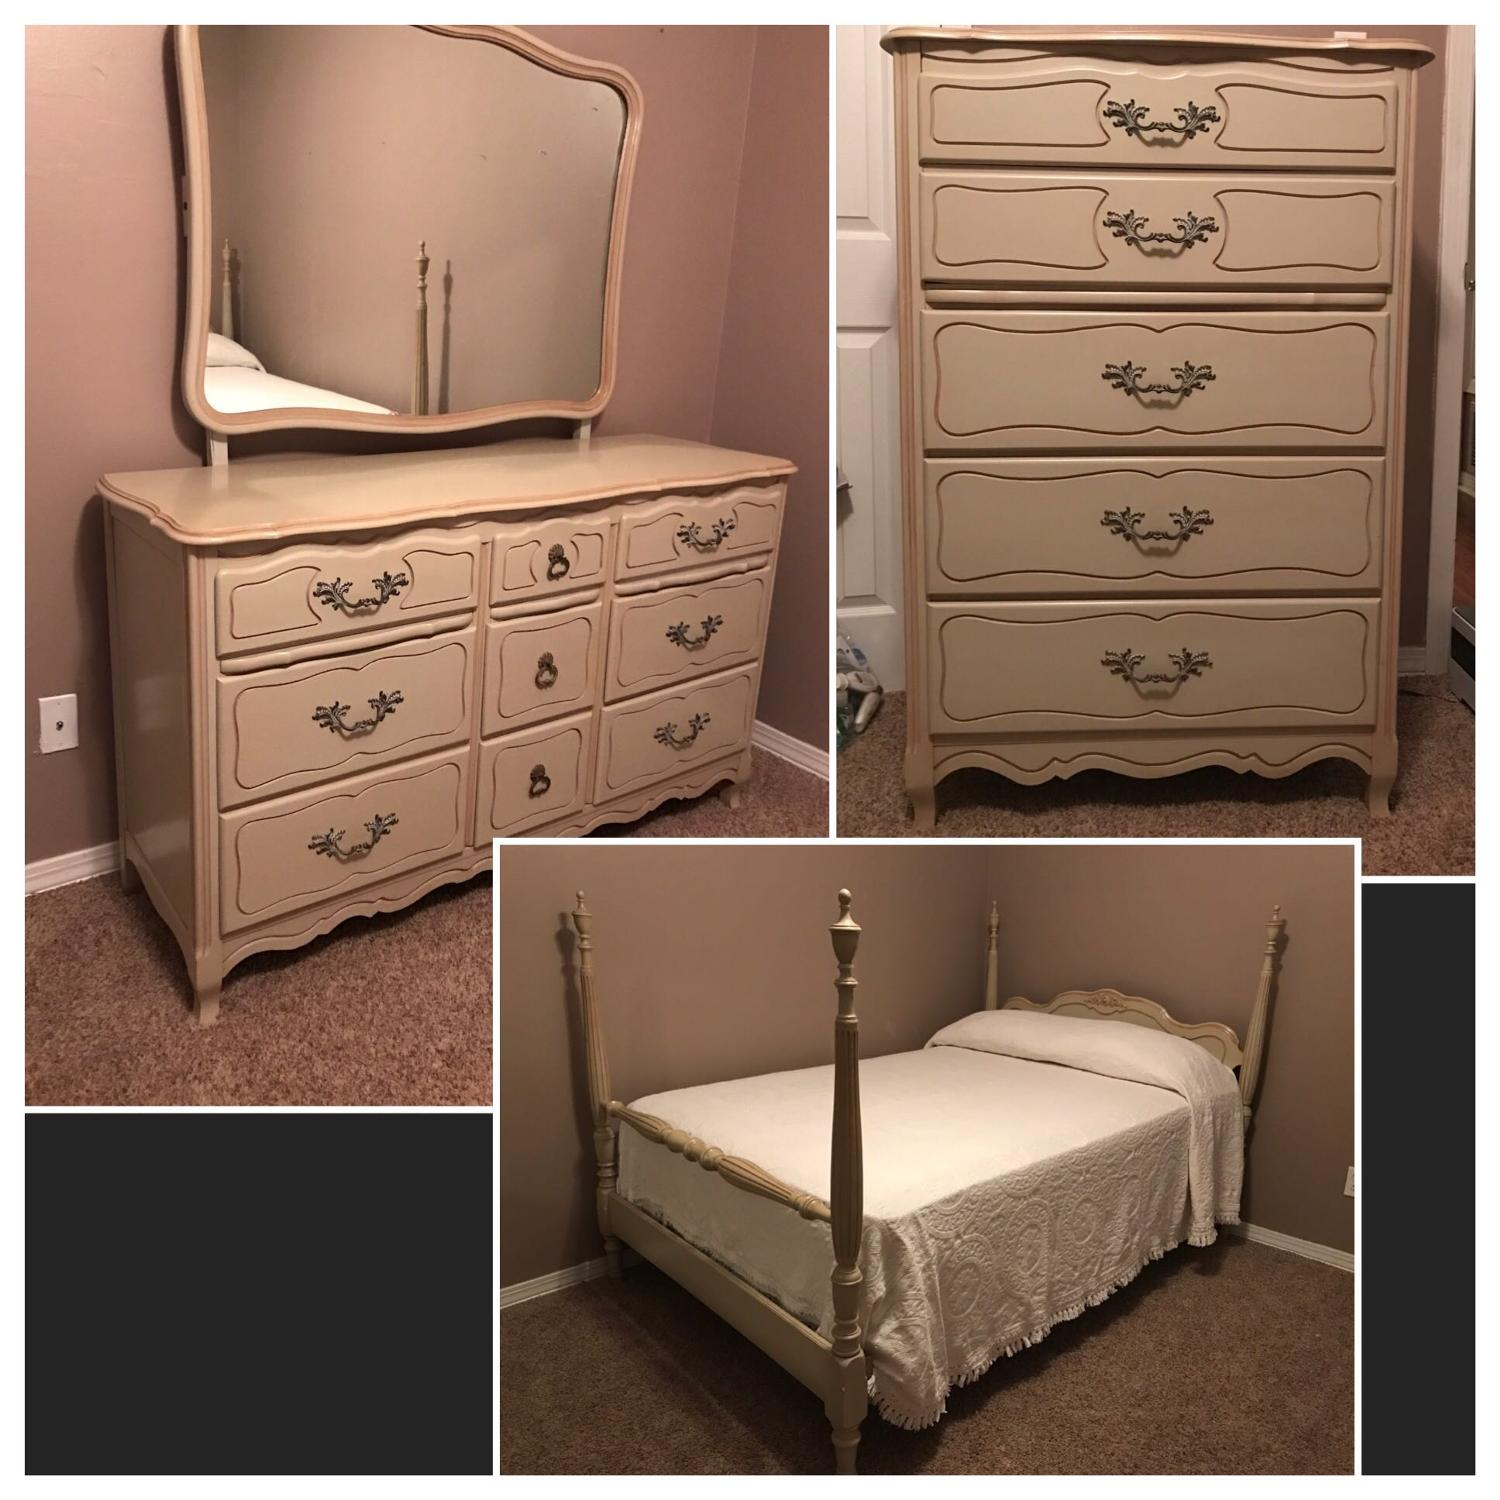 Find More 1950 39 S French Provincial Full Size Bedroom Suit Includes Bed Linen For Sale At Up To